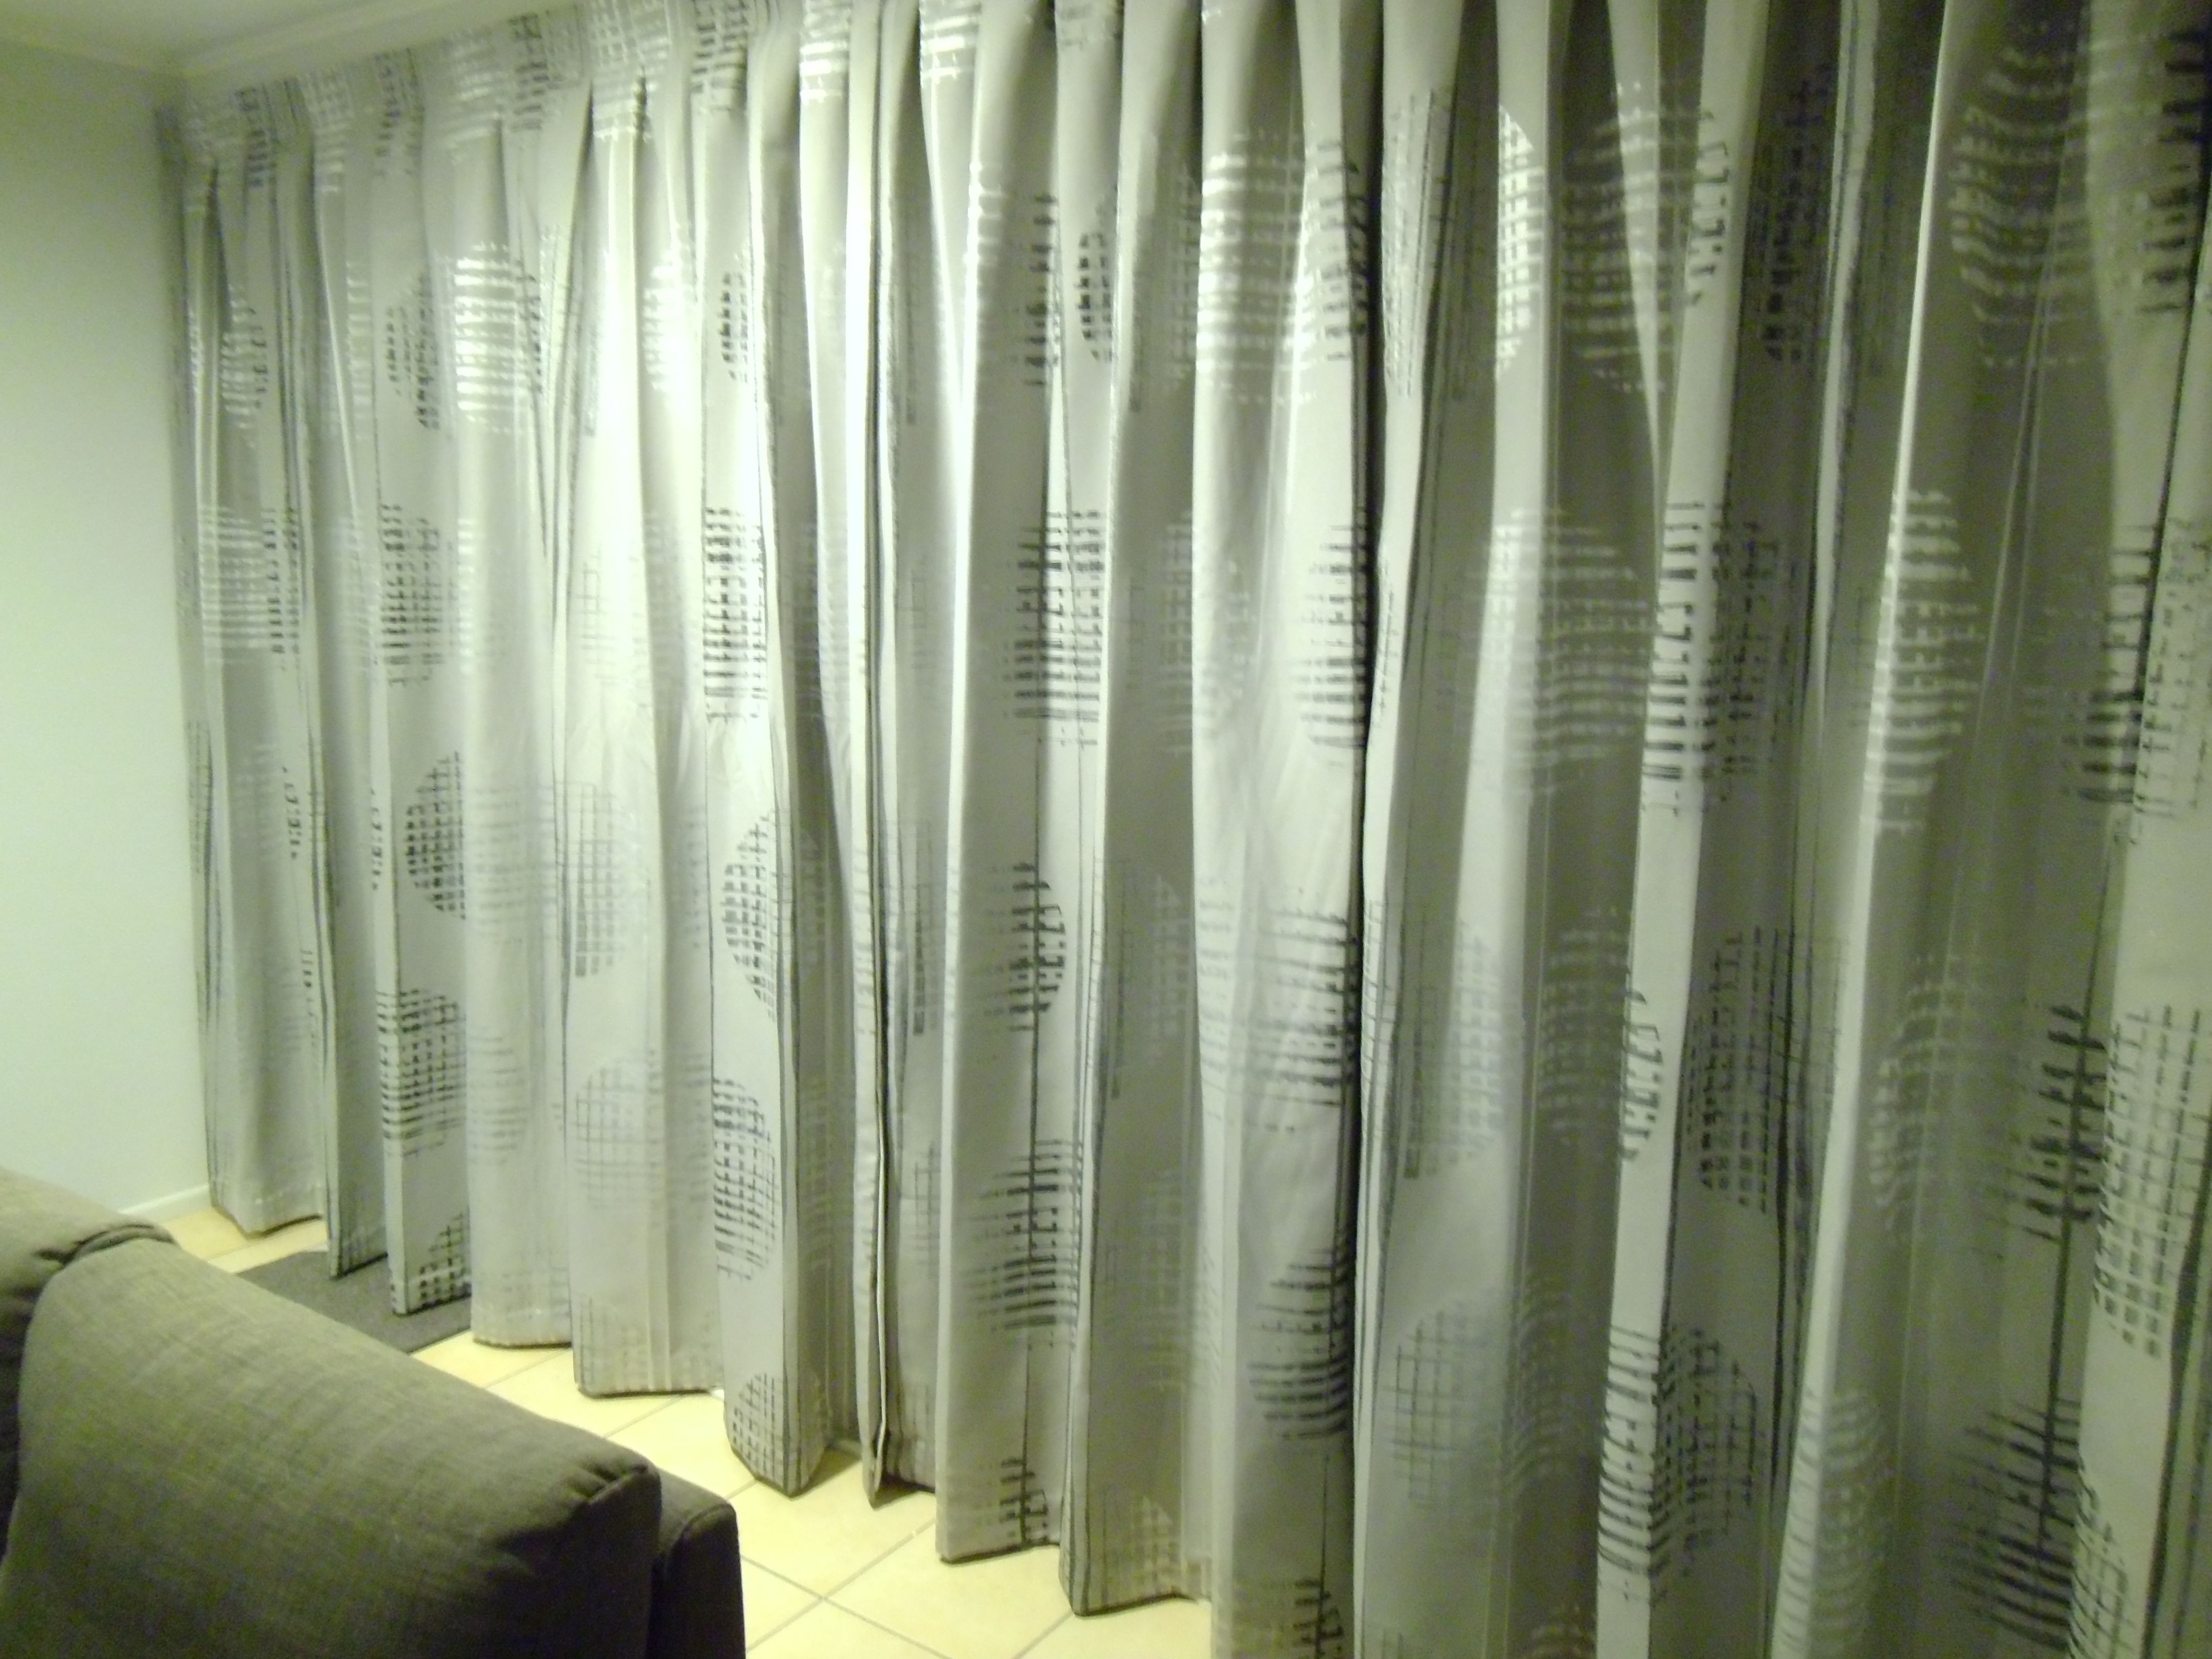 drapes and blinds floor to ceiling drapes and blinds made by sew hung up